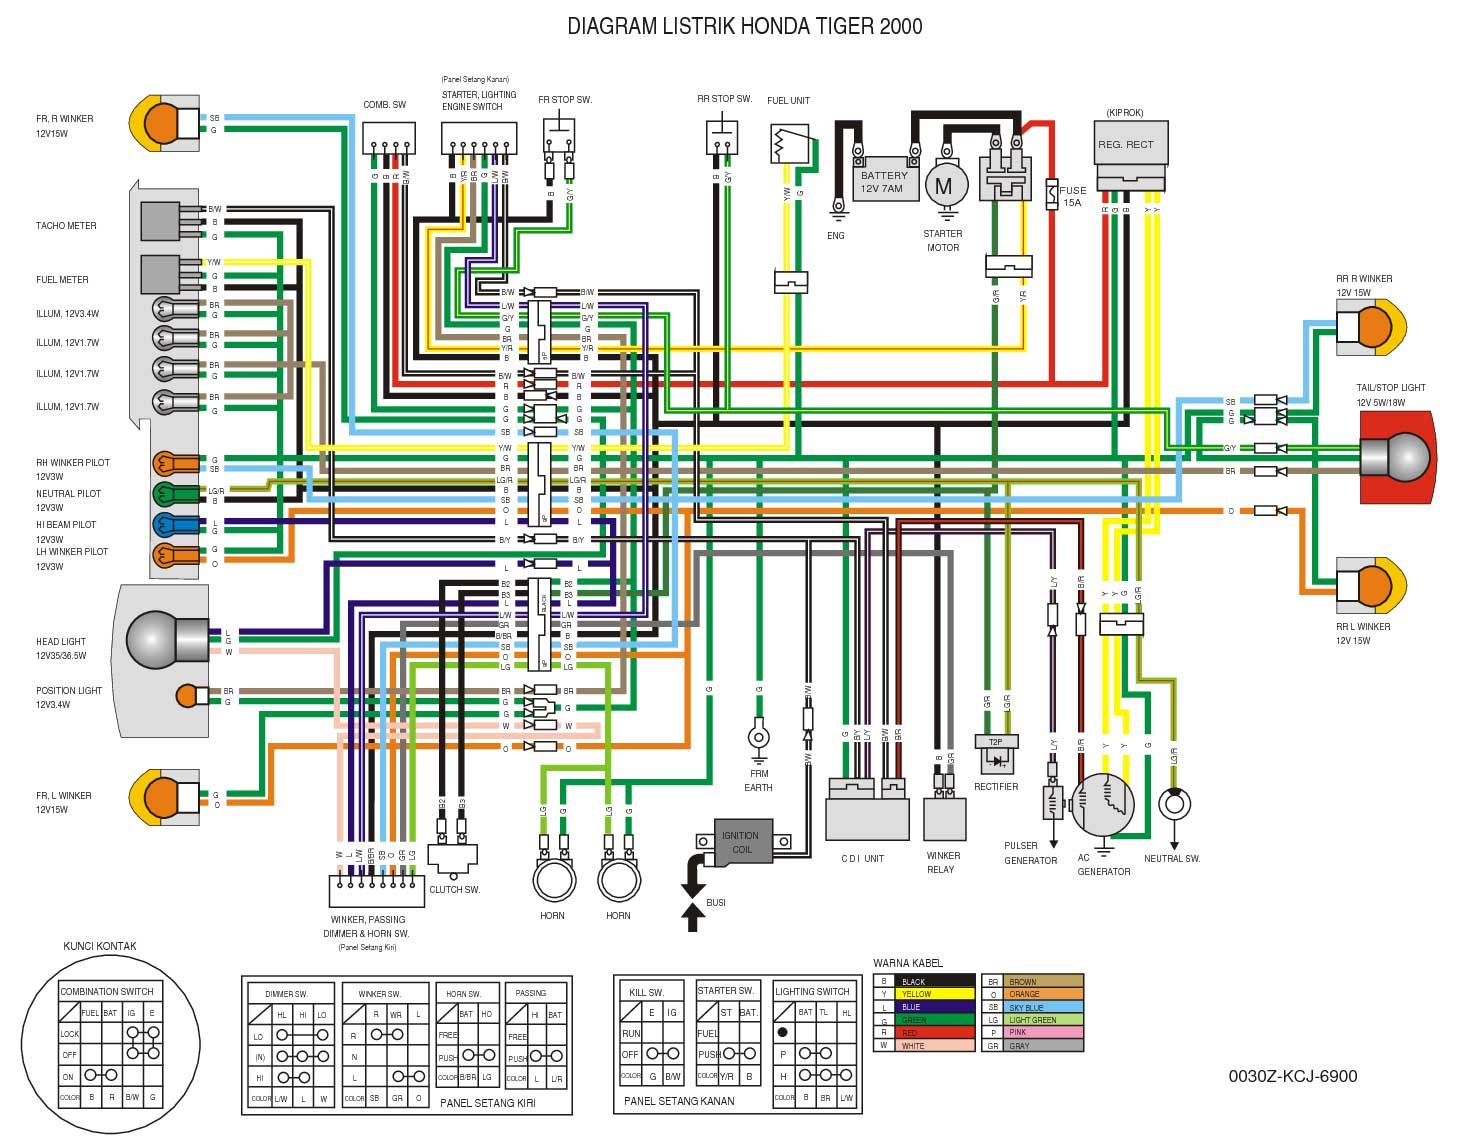 Wiring Diagram Honda Tiger 2000 Rancher Es Oh Xl125 Replica Rh Blackcat200 Com Pdf